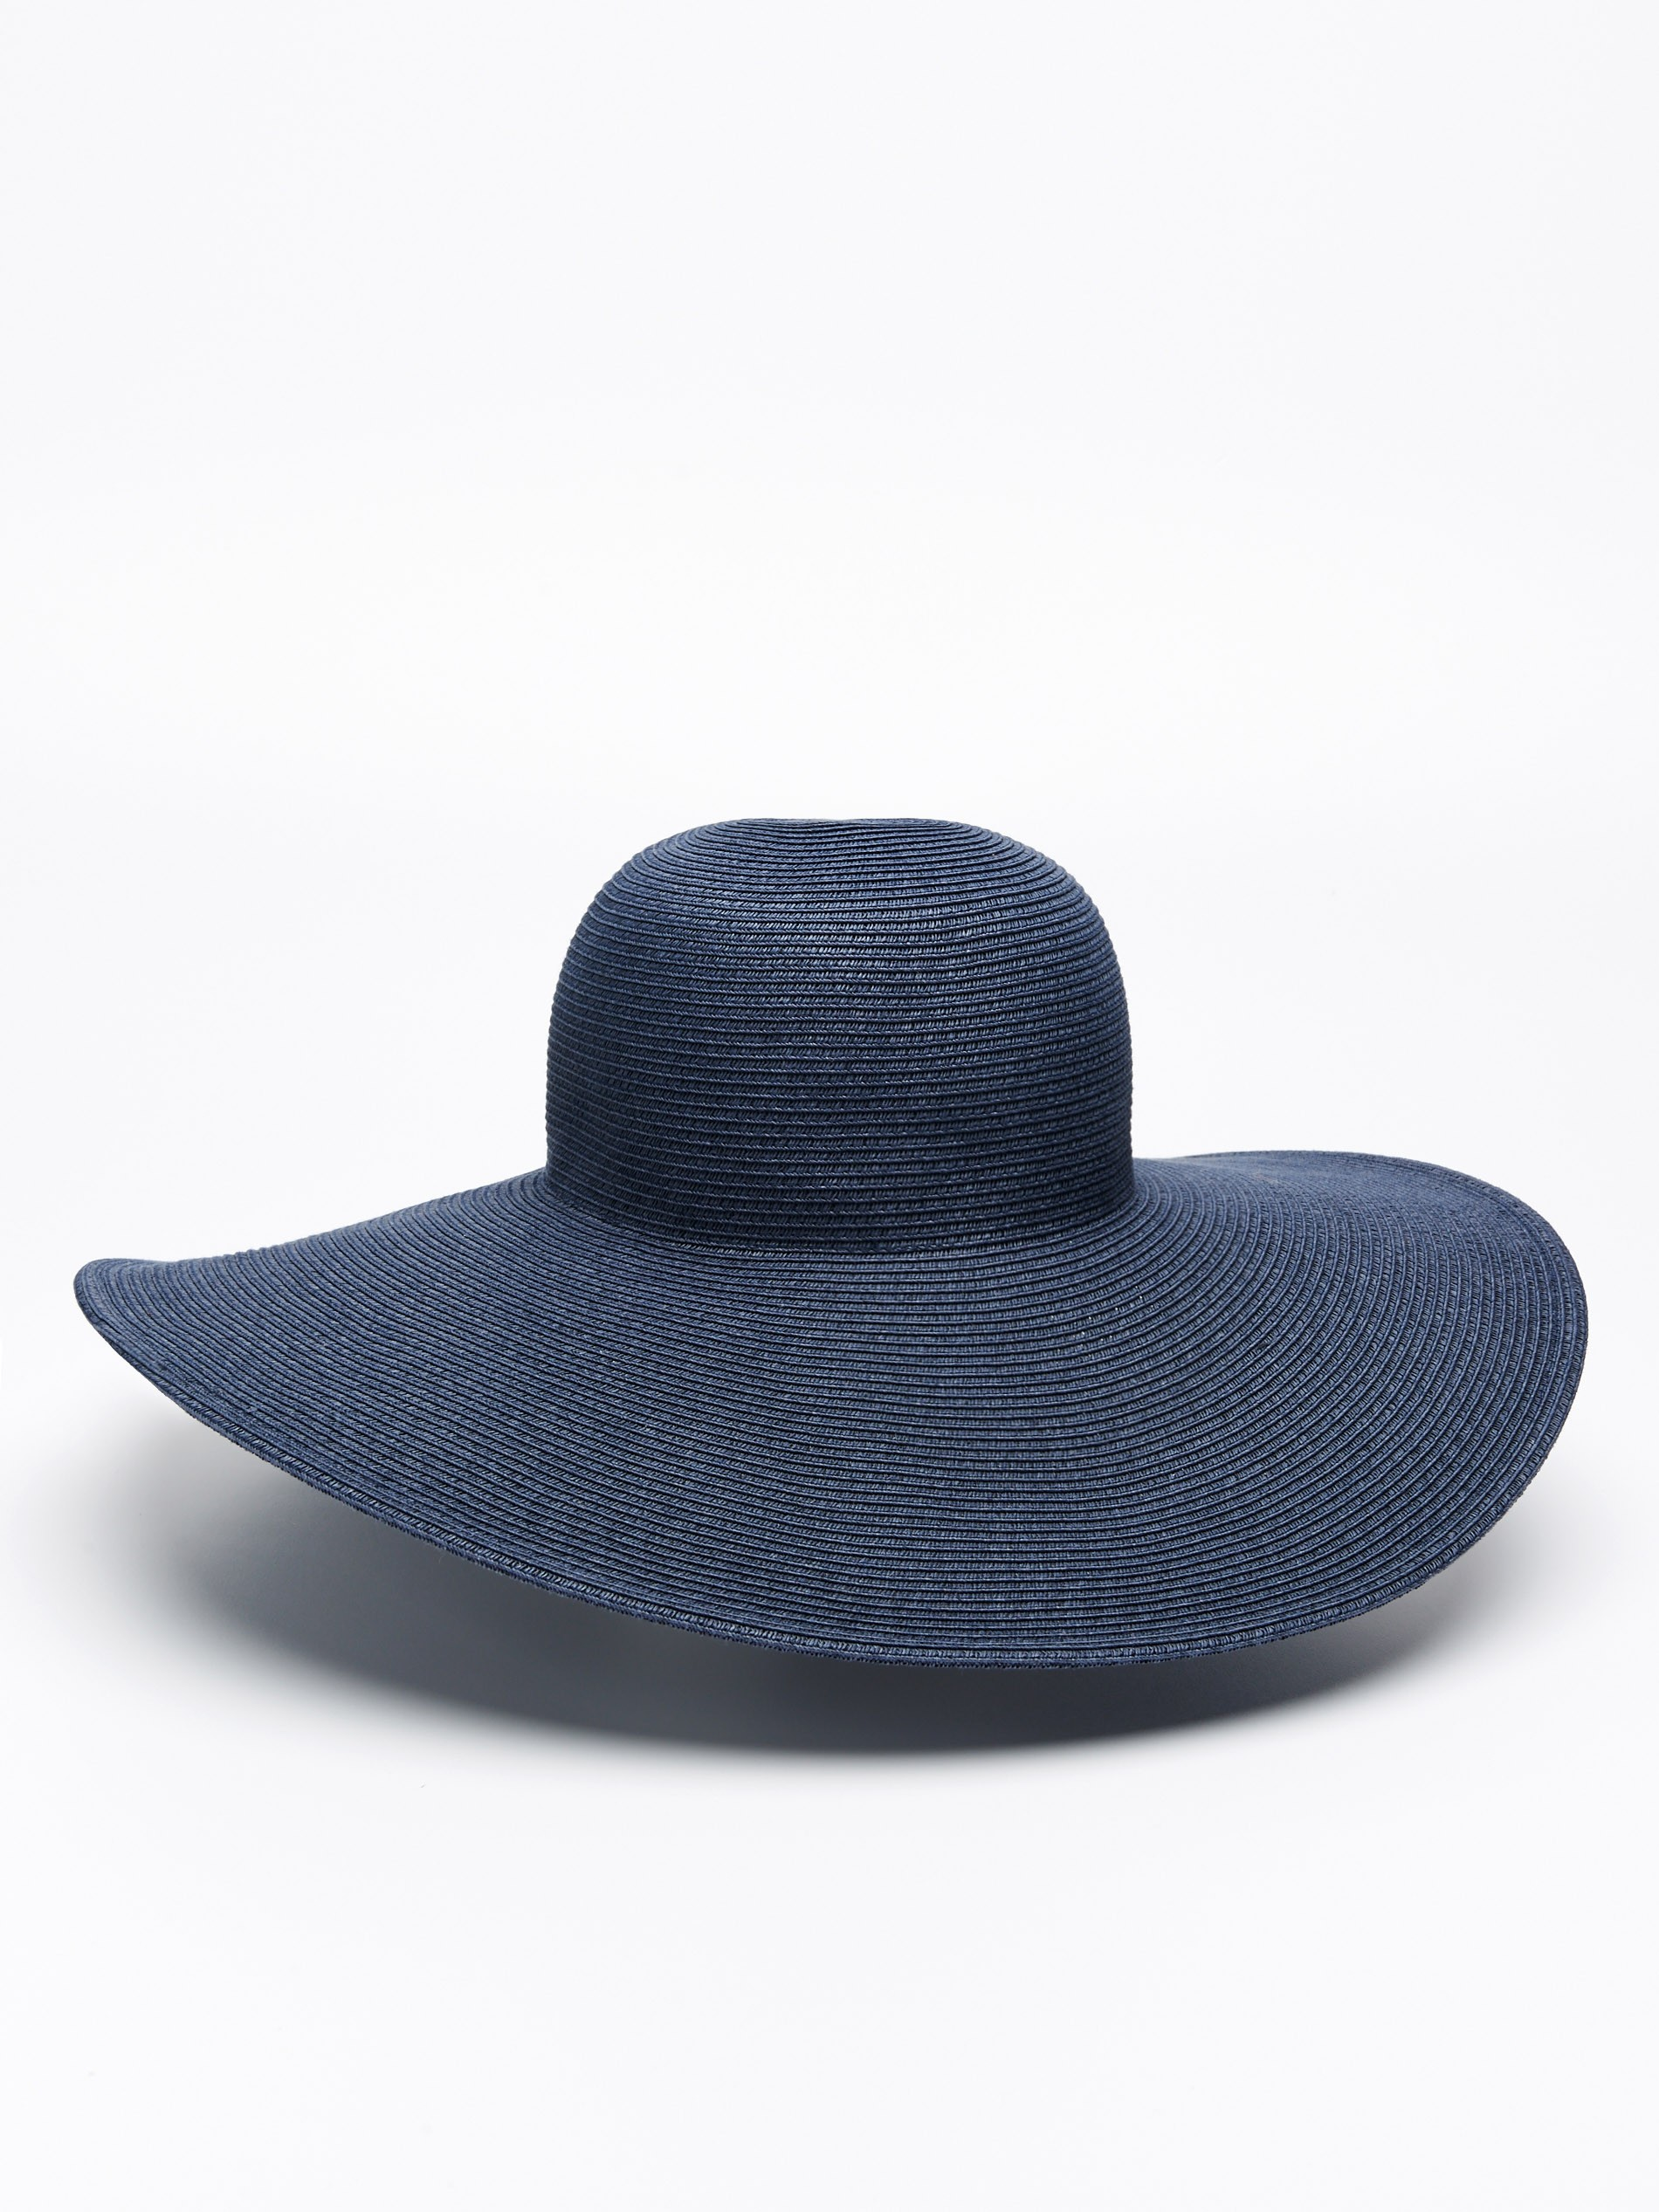 HAT, RESERVED